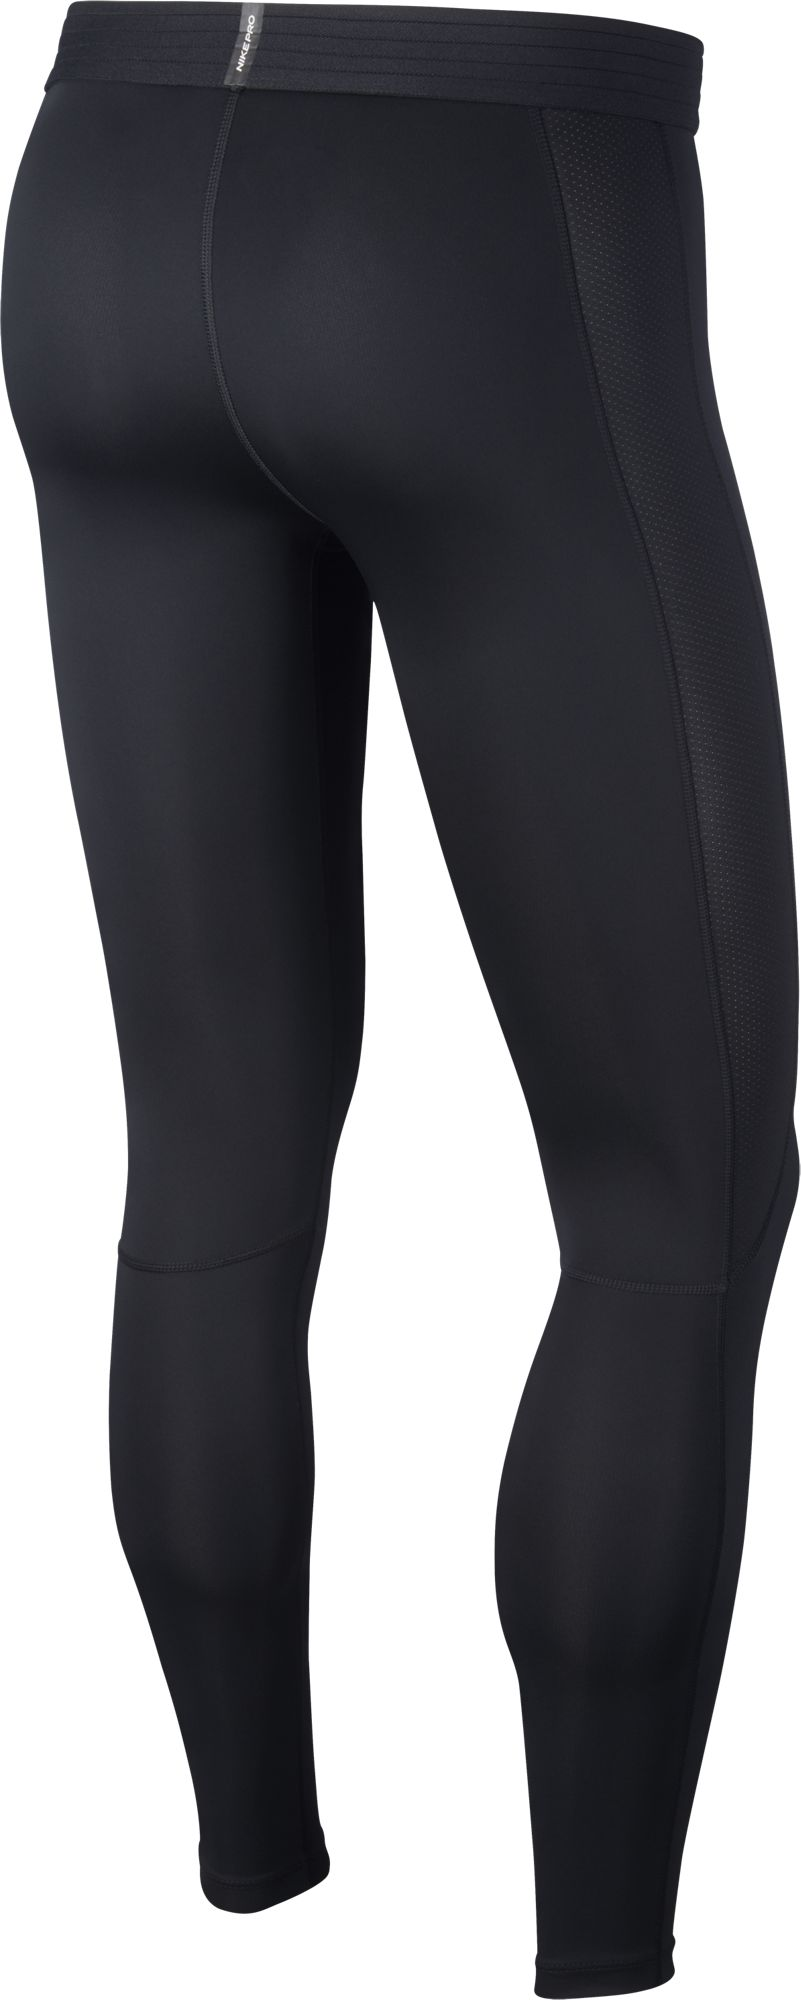 292254102101, M NP TIGHT, NIKE, Detail